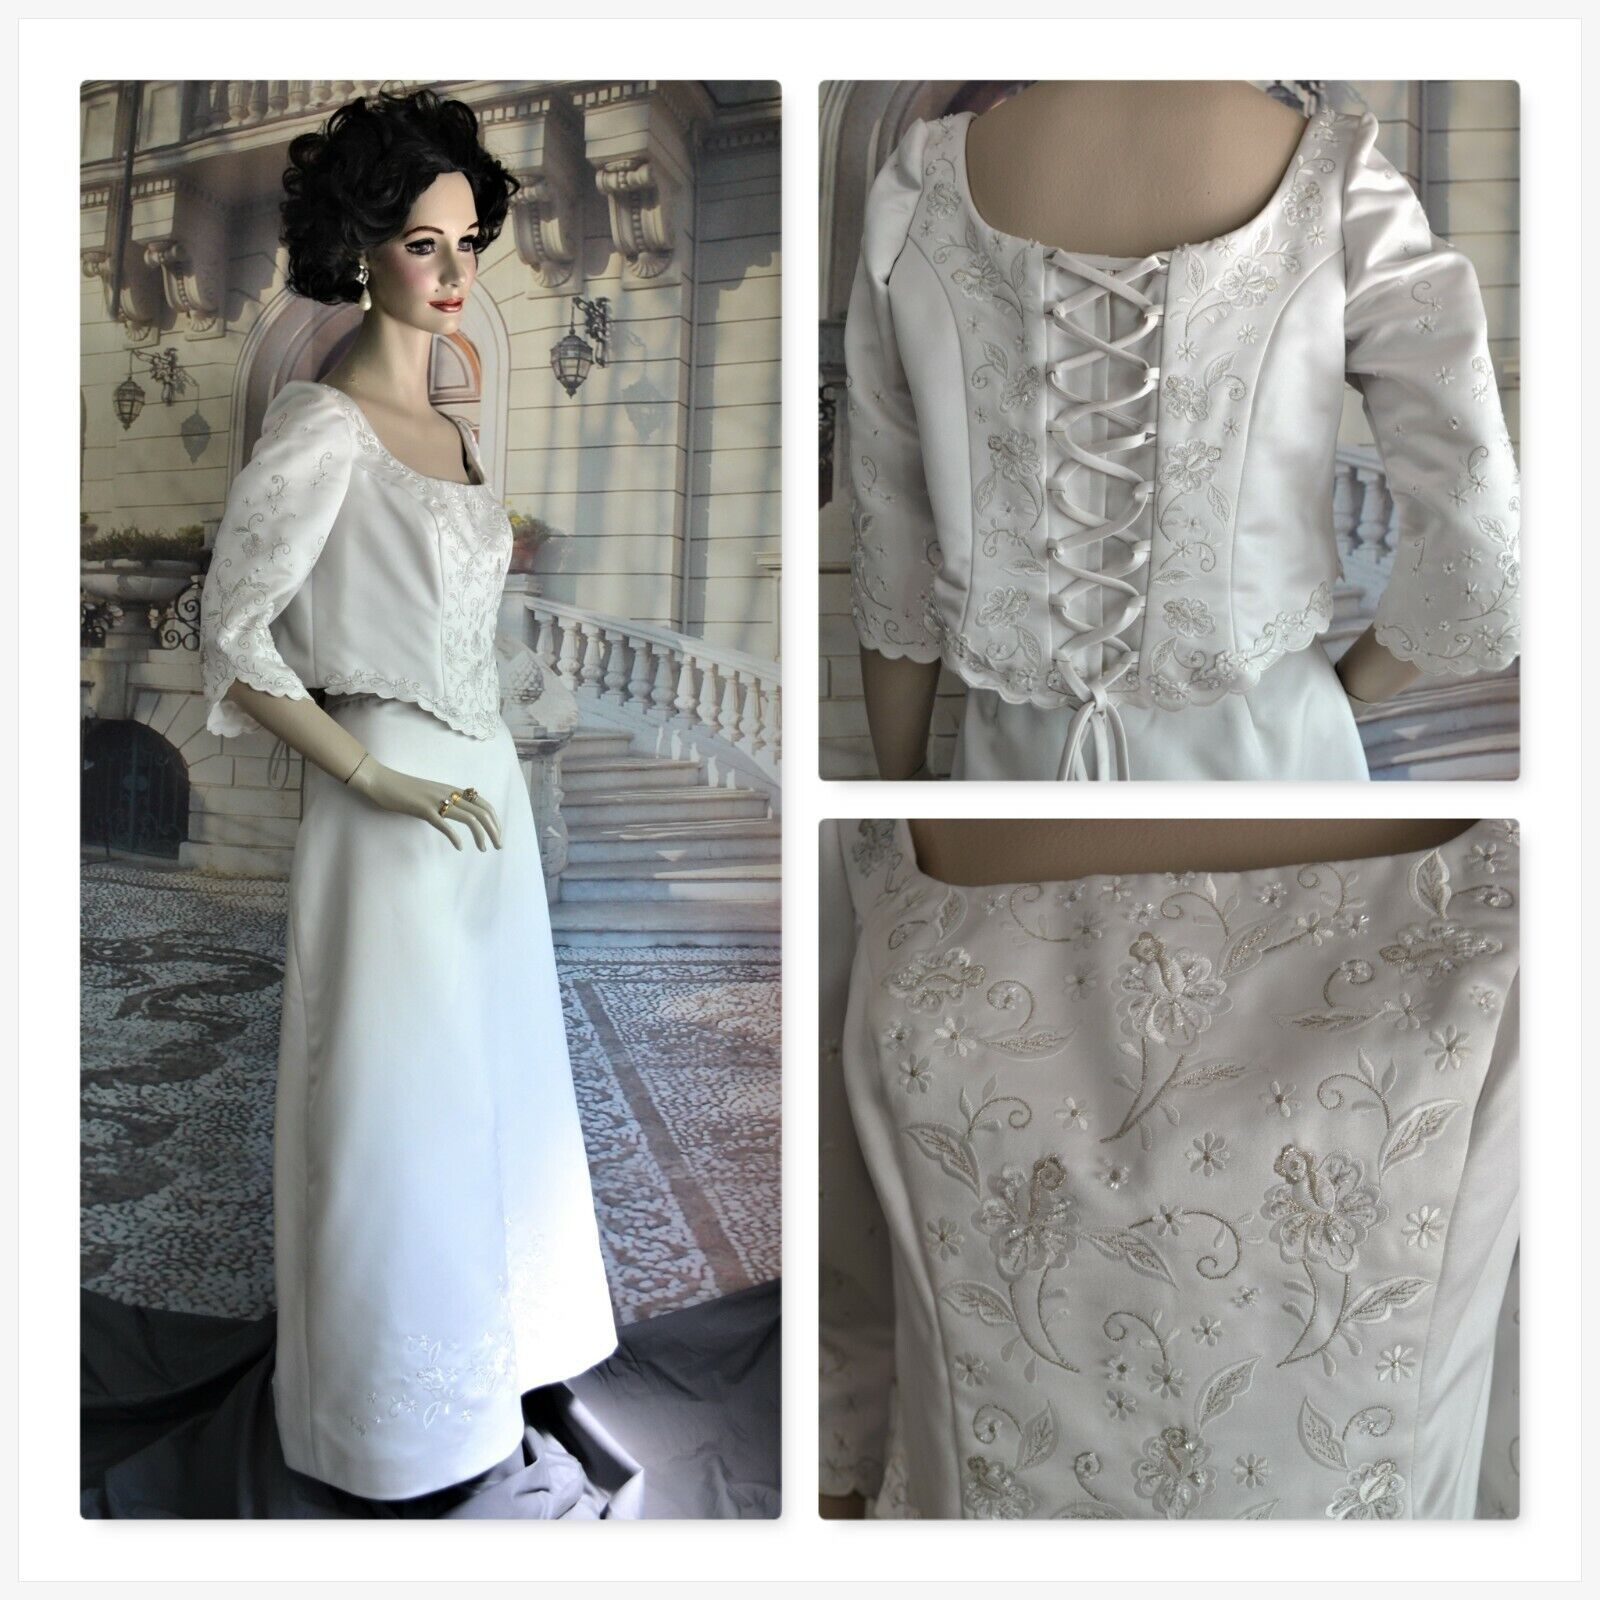 VENEZIA dress evening formal long SIZE 14 to 16 pale silvery white EMBELLISHED